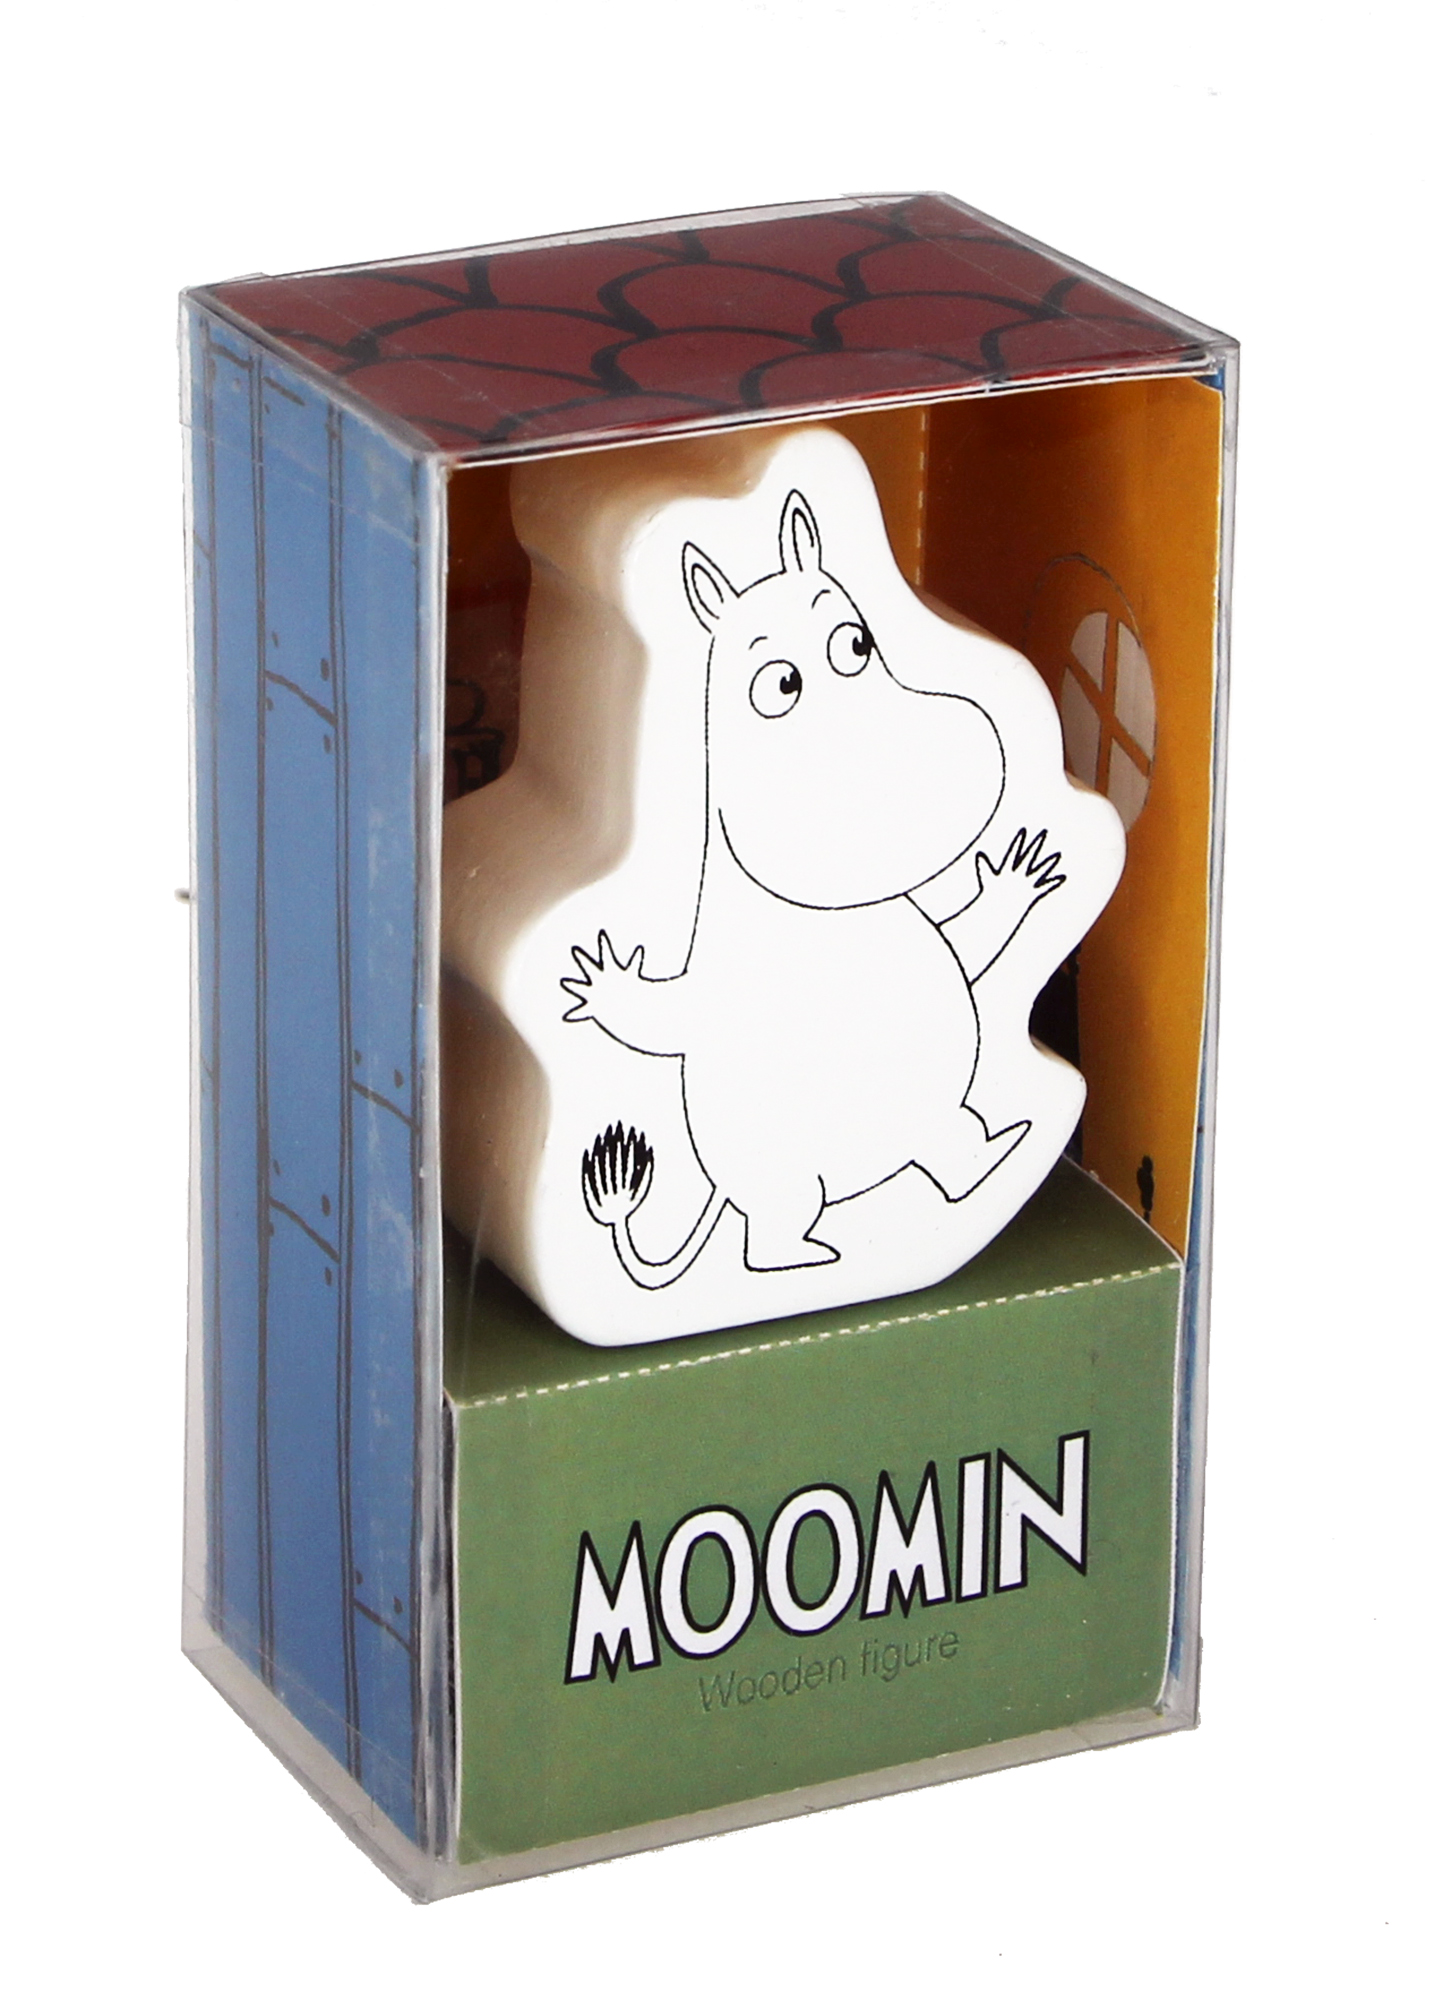 Barbo Toys My Little Toy Box single wooden figurine Moomin